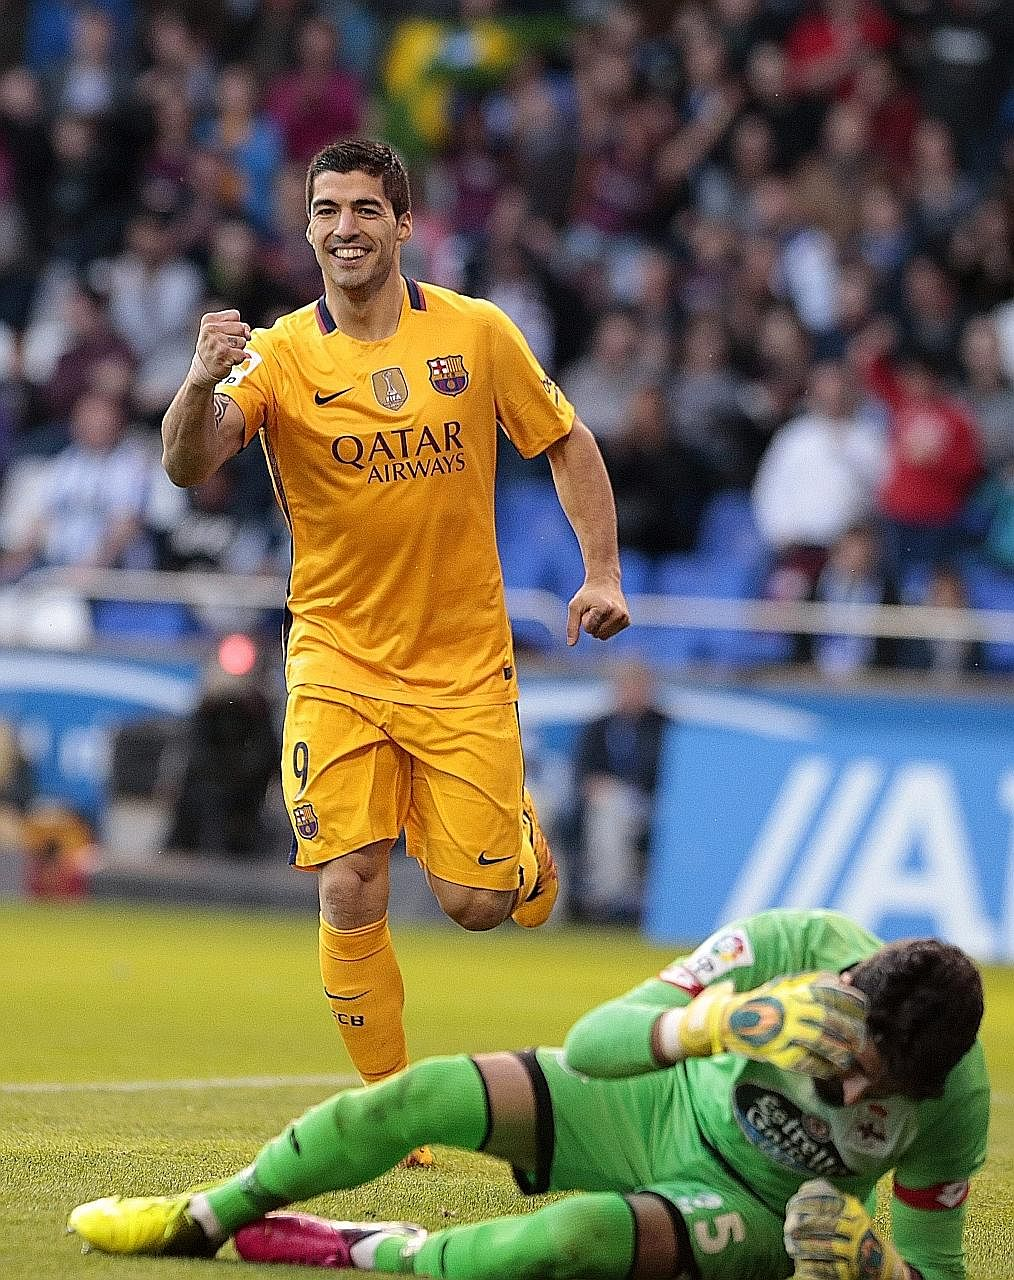 Luis Suarez celebrates completing his hat-trick against Athletic Bilbao. He later added another goal to take his season's tally to 30, clawing within one of Cristiano Ronaldo in the Pichichi standings.